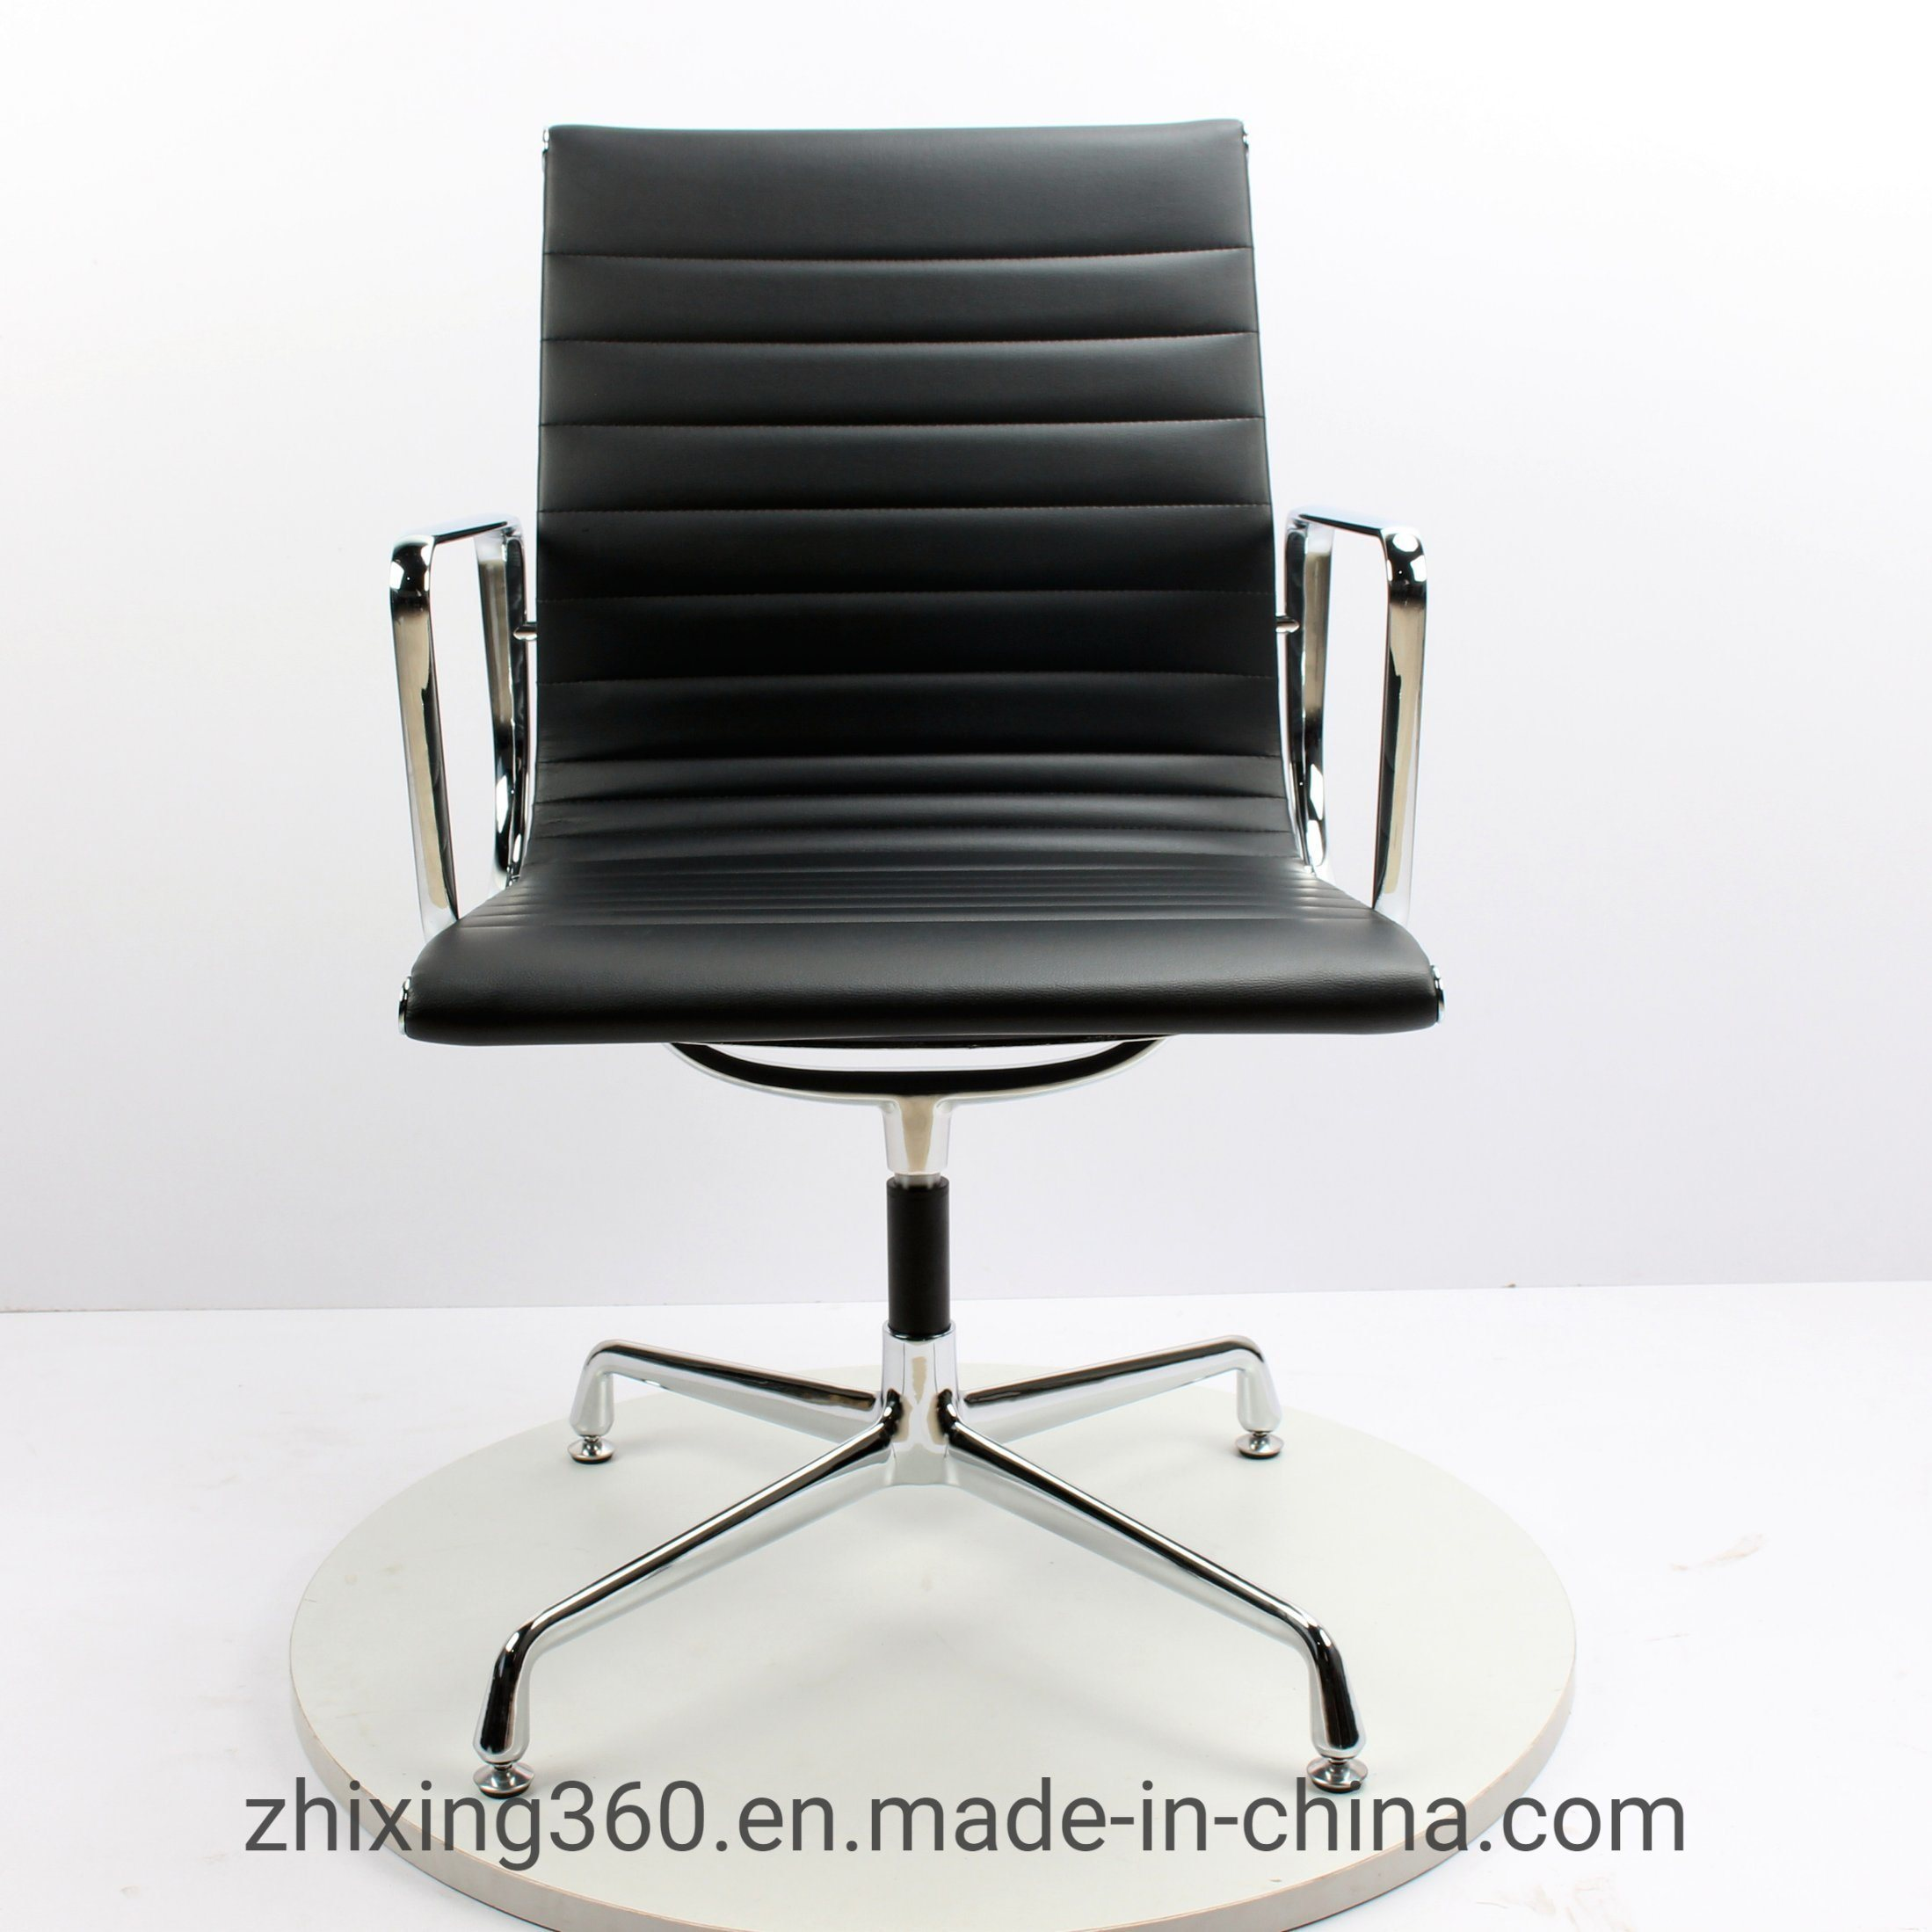 China wholesale hot sale cheap comfortable office chair 360 degree adjustable medium back modern full china mesh chair office furniture